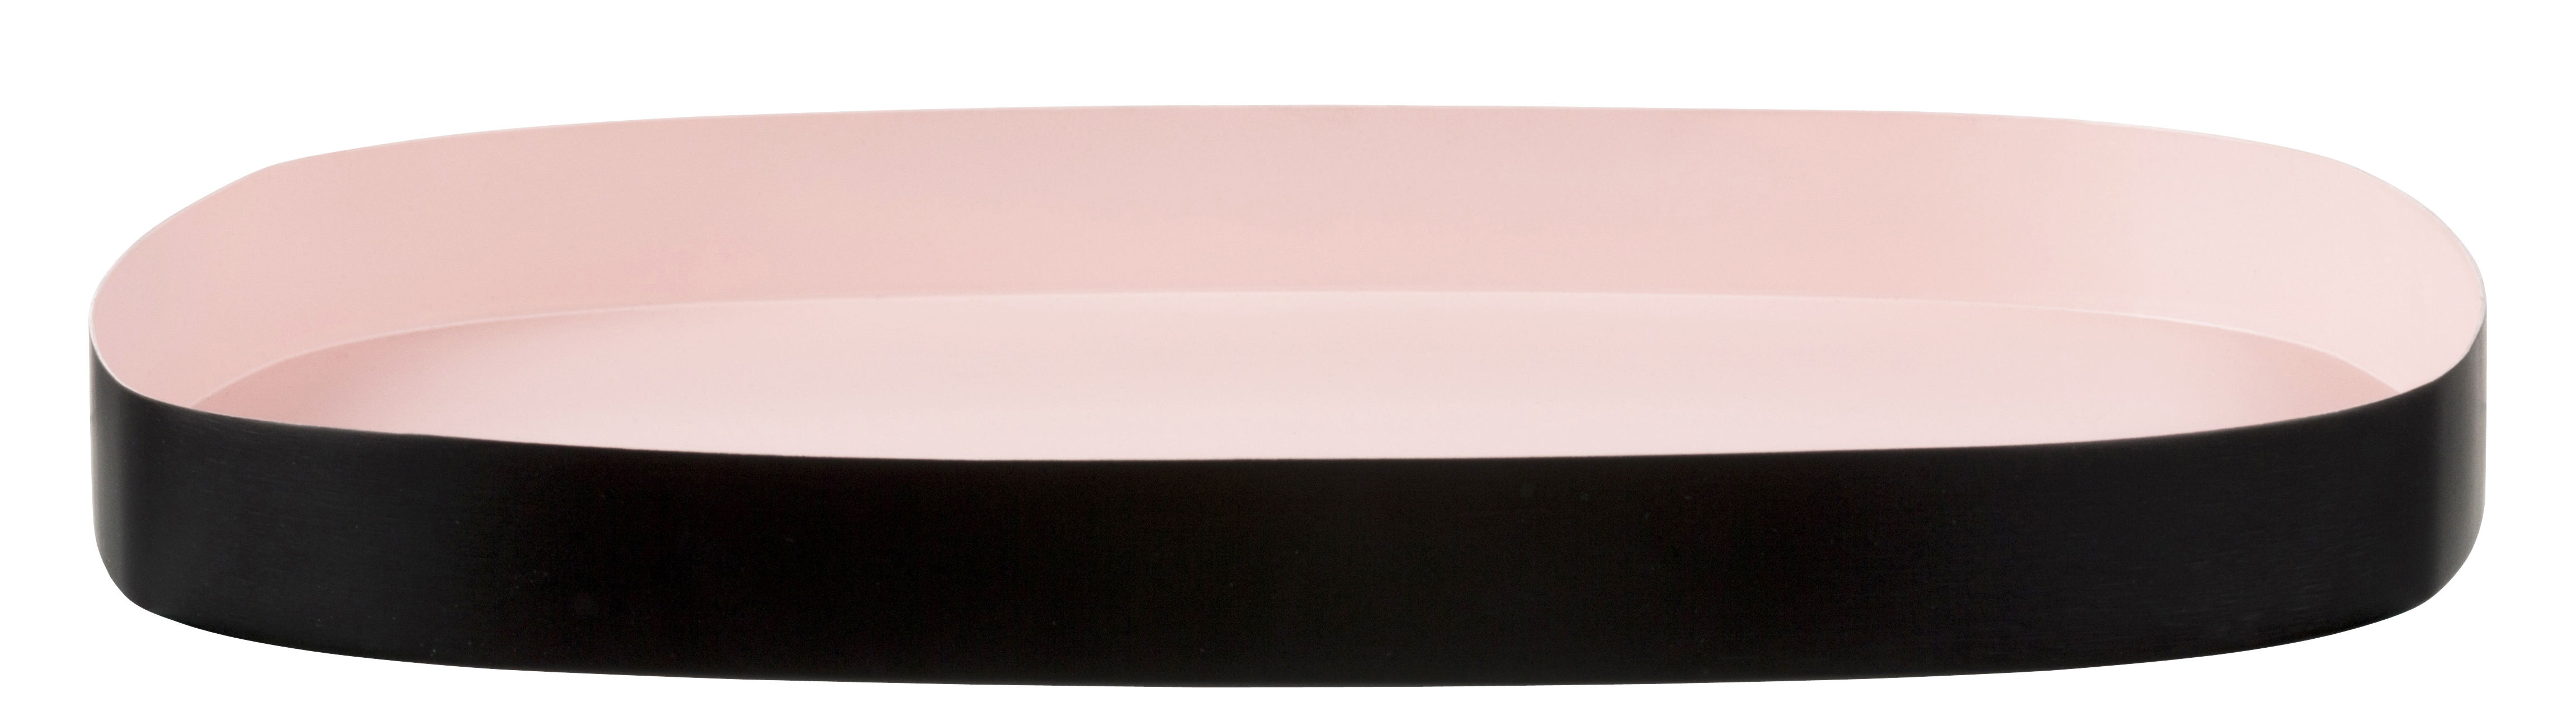 Tableware - Trays - Television Large Tray - 33 x 29 cm by Design Letters - Pink / Black - Painted steel